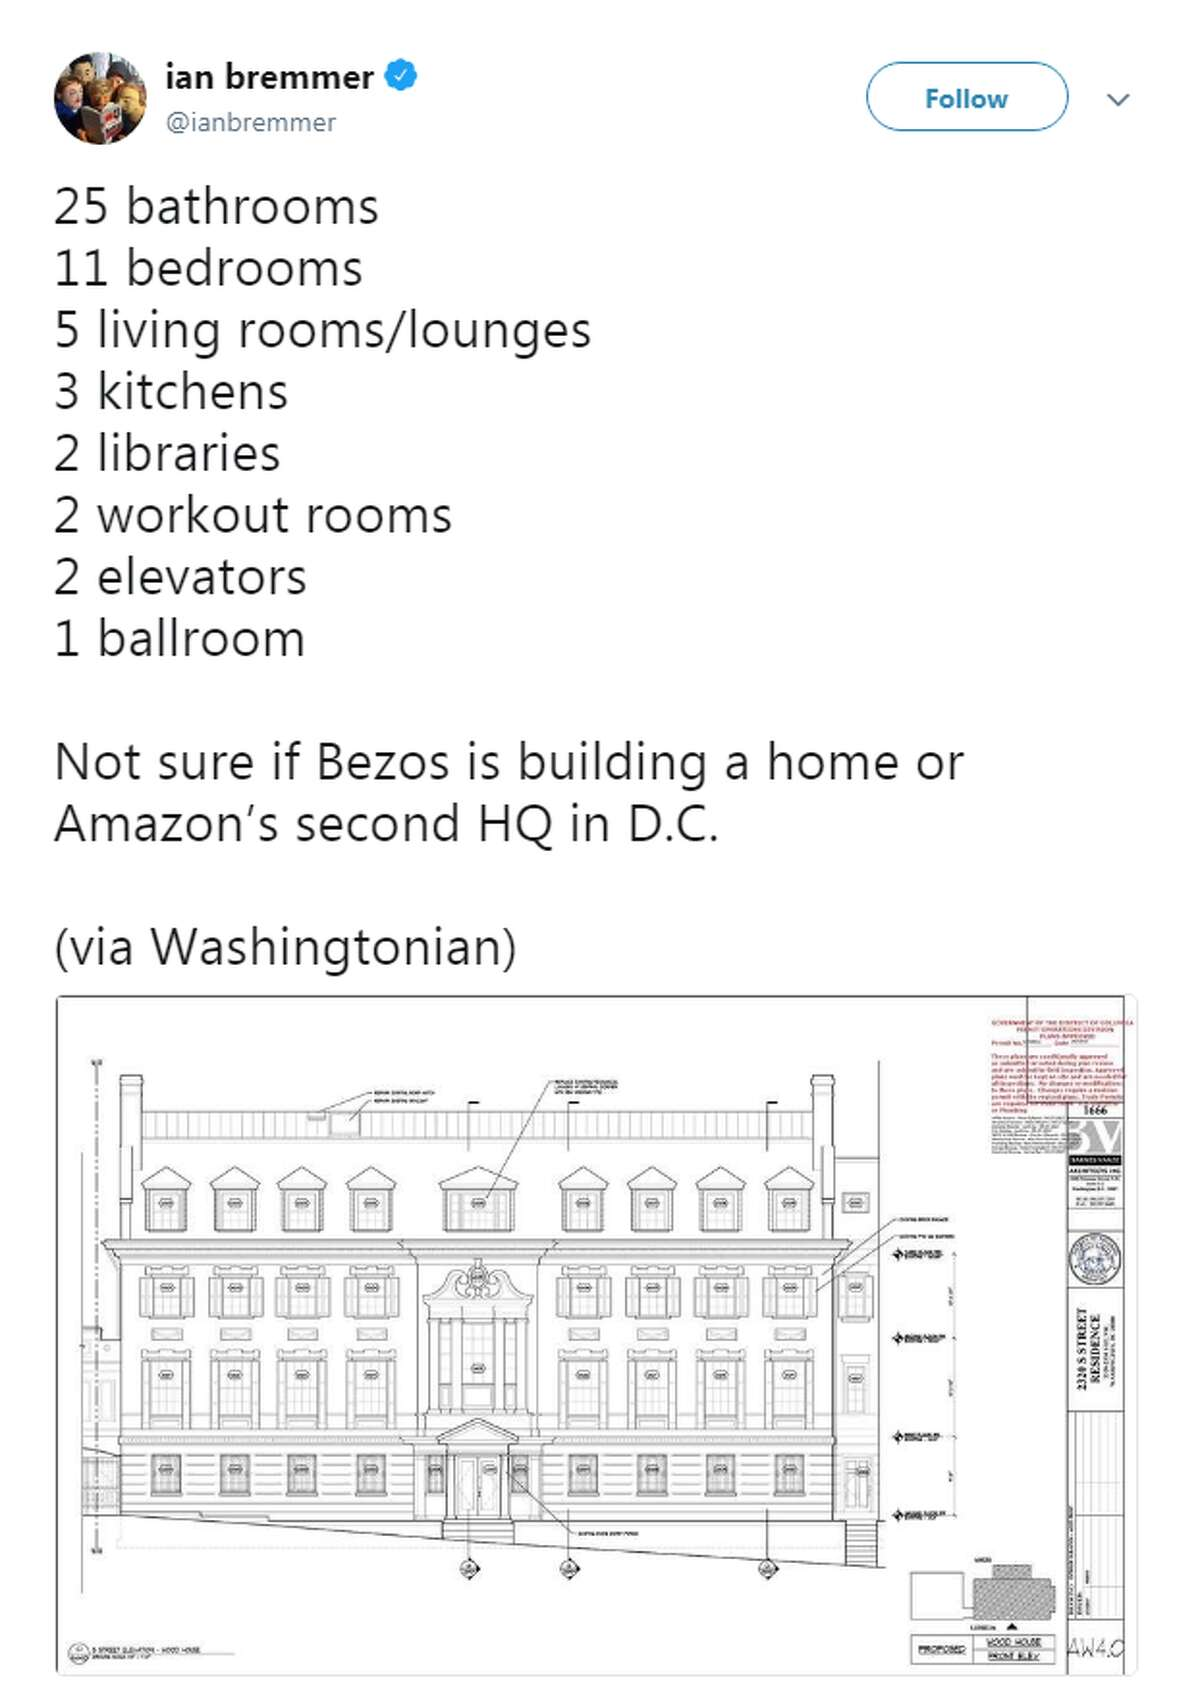 Amazon founder Jeff Bezos' renovated Washington, D.C., mansion sports 25 bathrooms, 11 bedrooms, five living rooms/lounges, five staircases and three kitchens, among a litany of features.